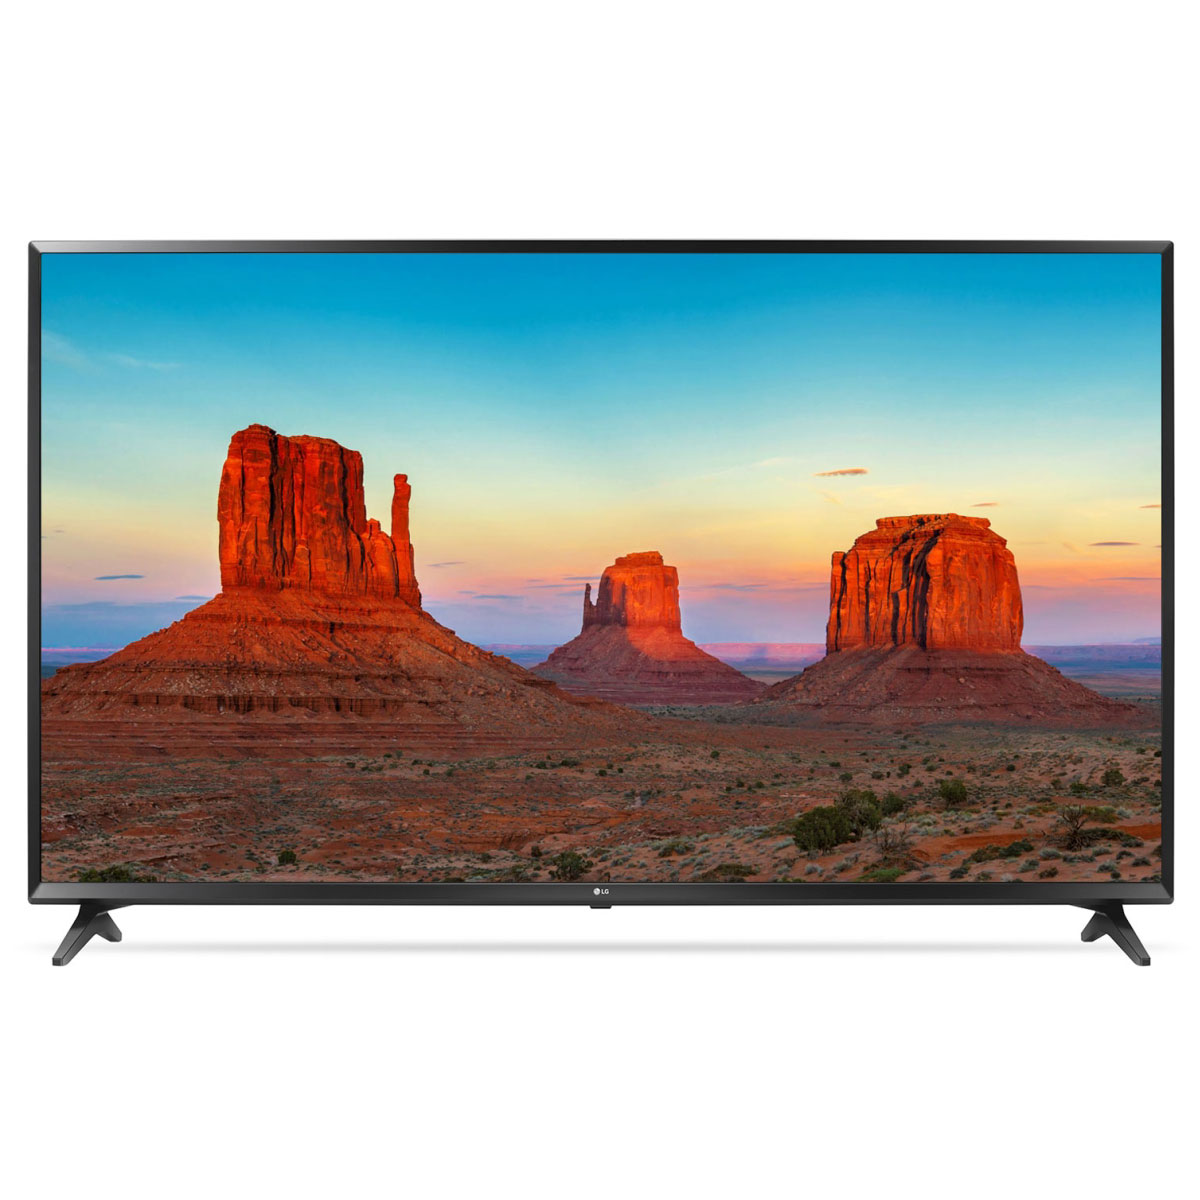 "TV LG 65UK6100 Téléviseur LED 4K 65"" (165 cm) 16/9 - 3840 x 2160 pixels - Ultra HD 2160p - HDR - Wi-Fi - Bluetooth - DLNA - 1600 Hz"